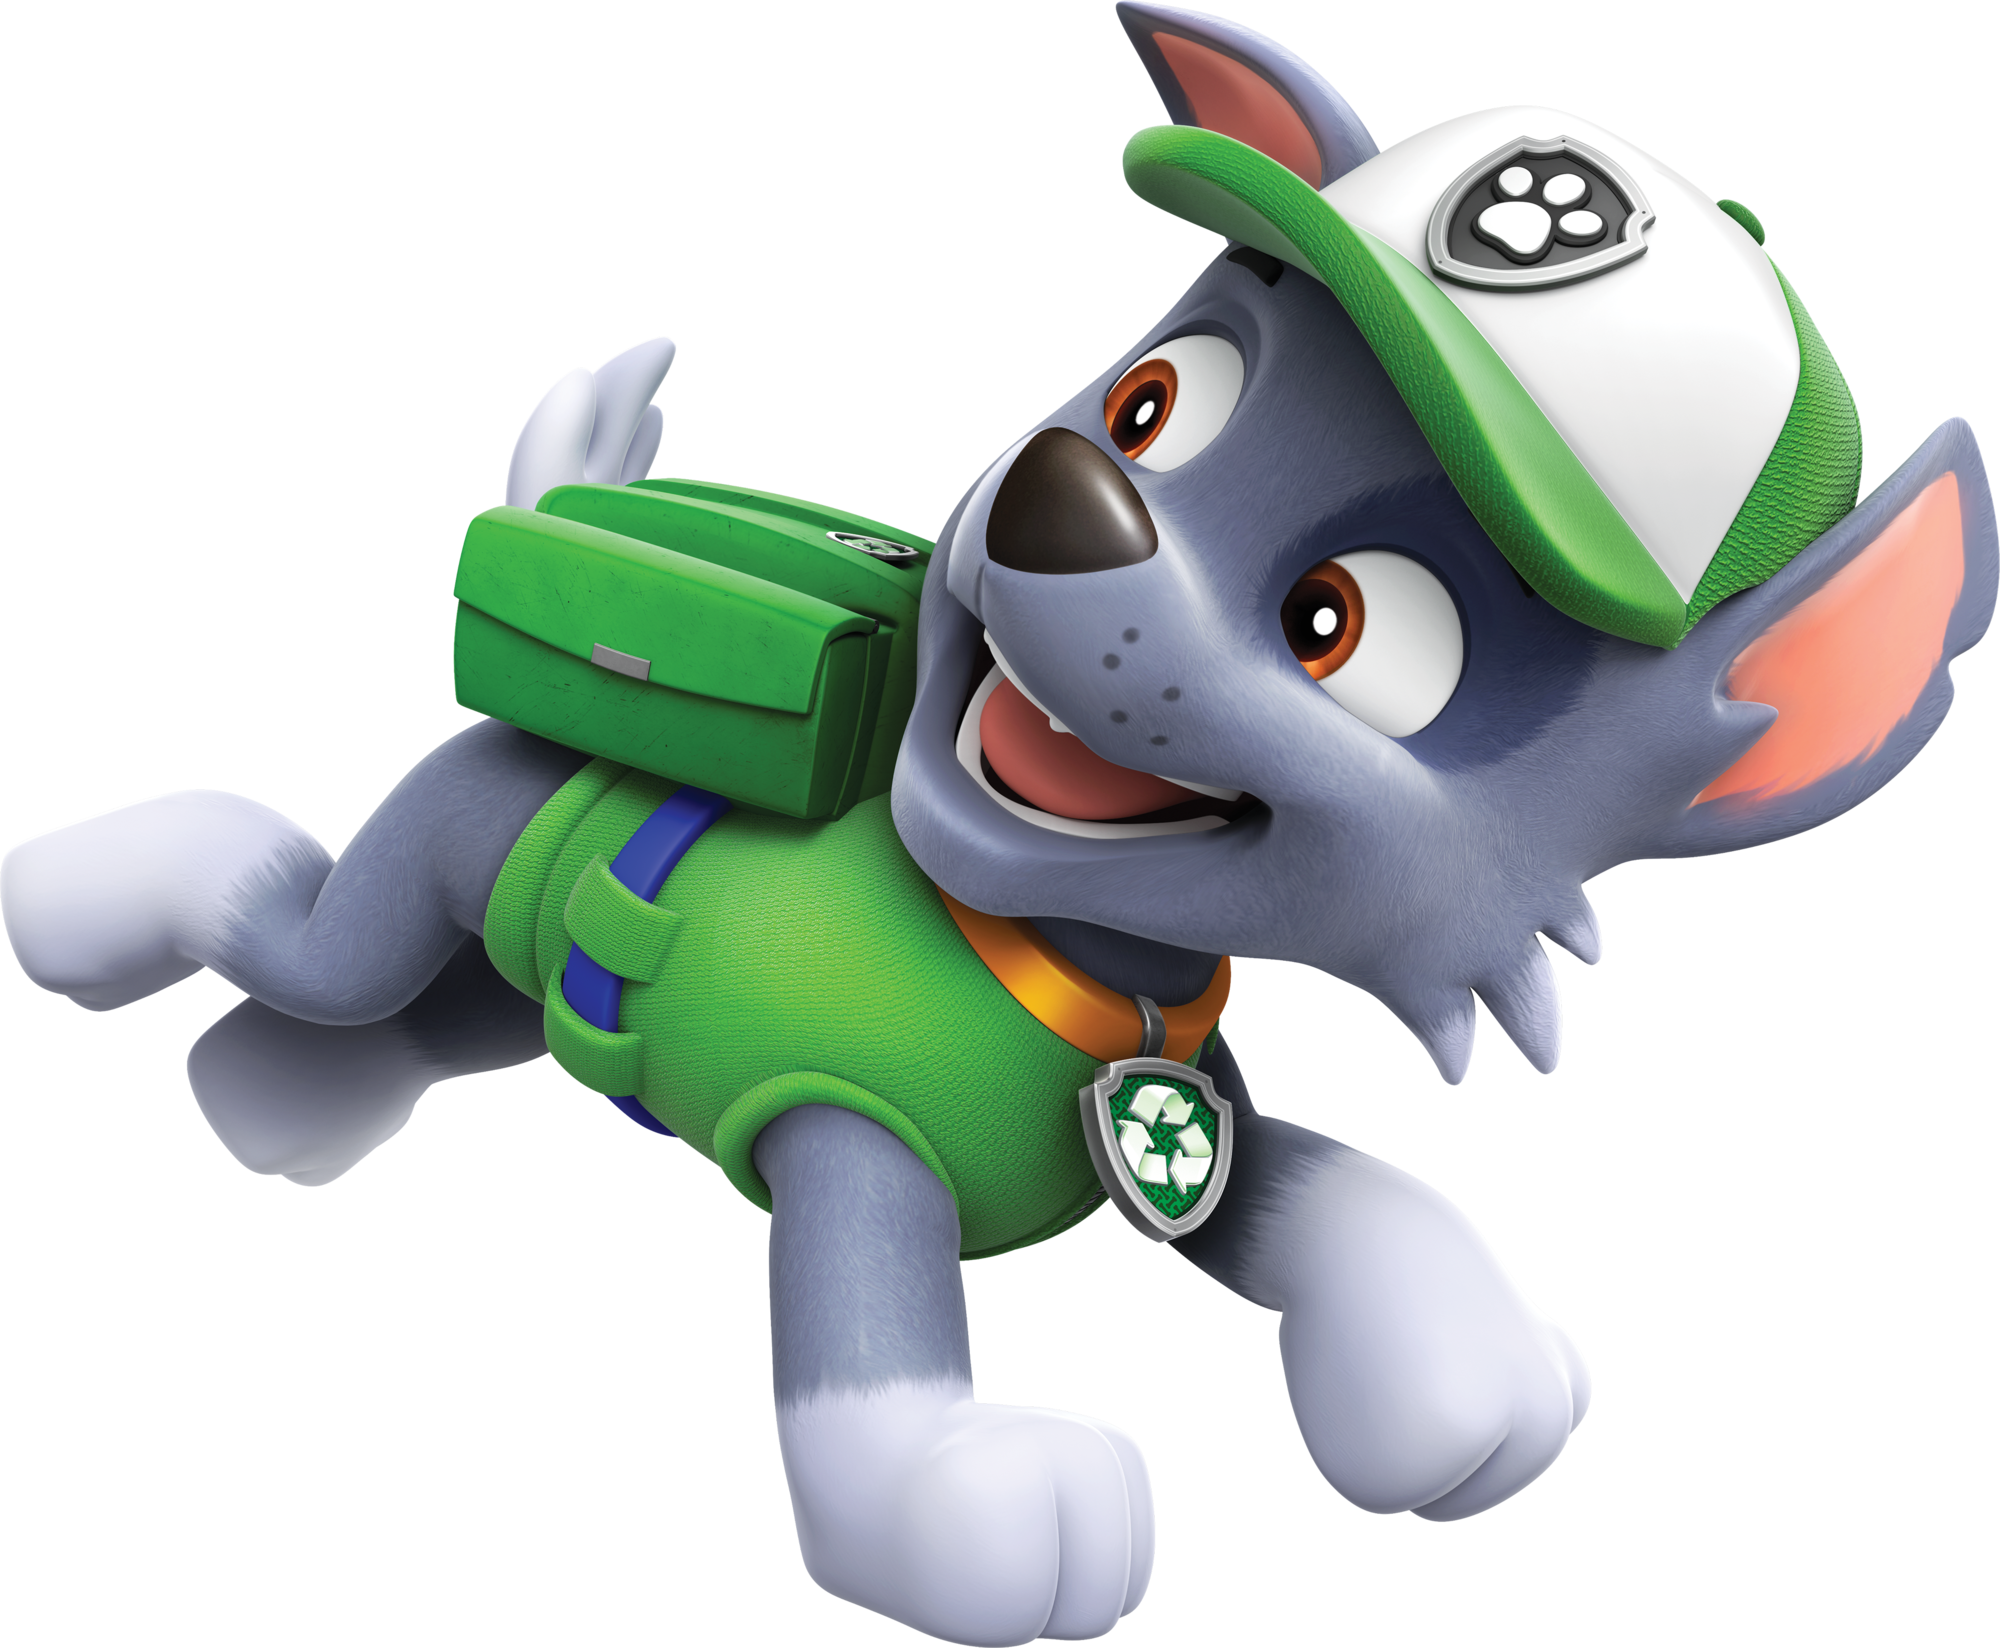 Paw patrol clipart transparent png library Rocky paw patrol clipart - ClipartFox png library